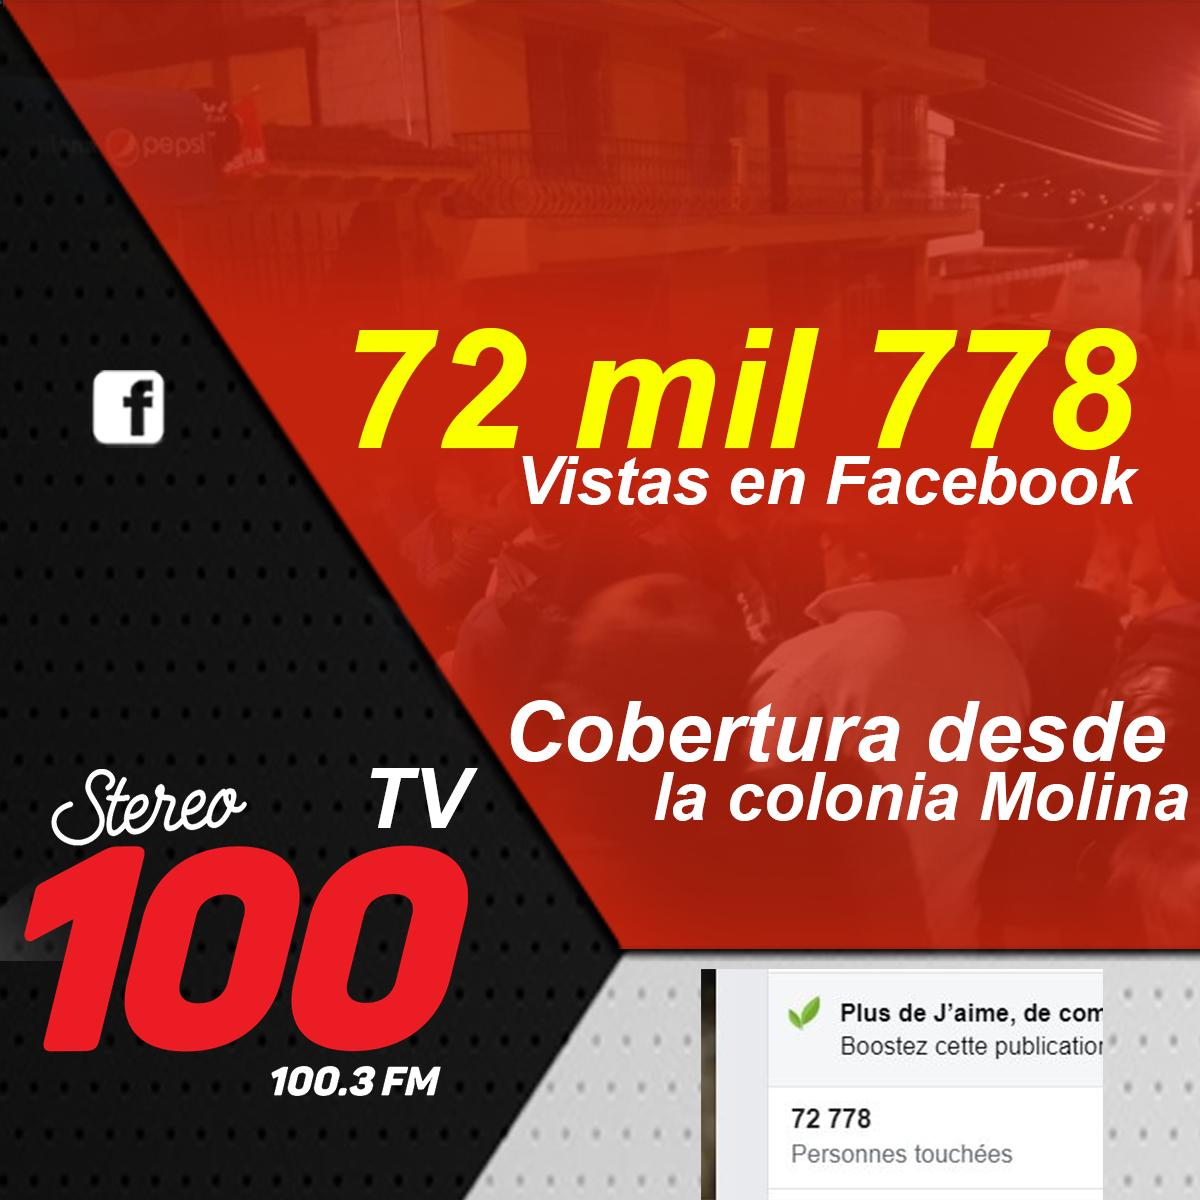 Stereo100Noticias on Twitter: